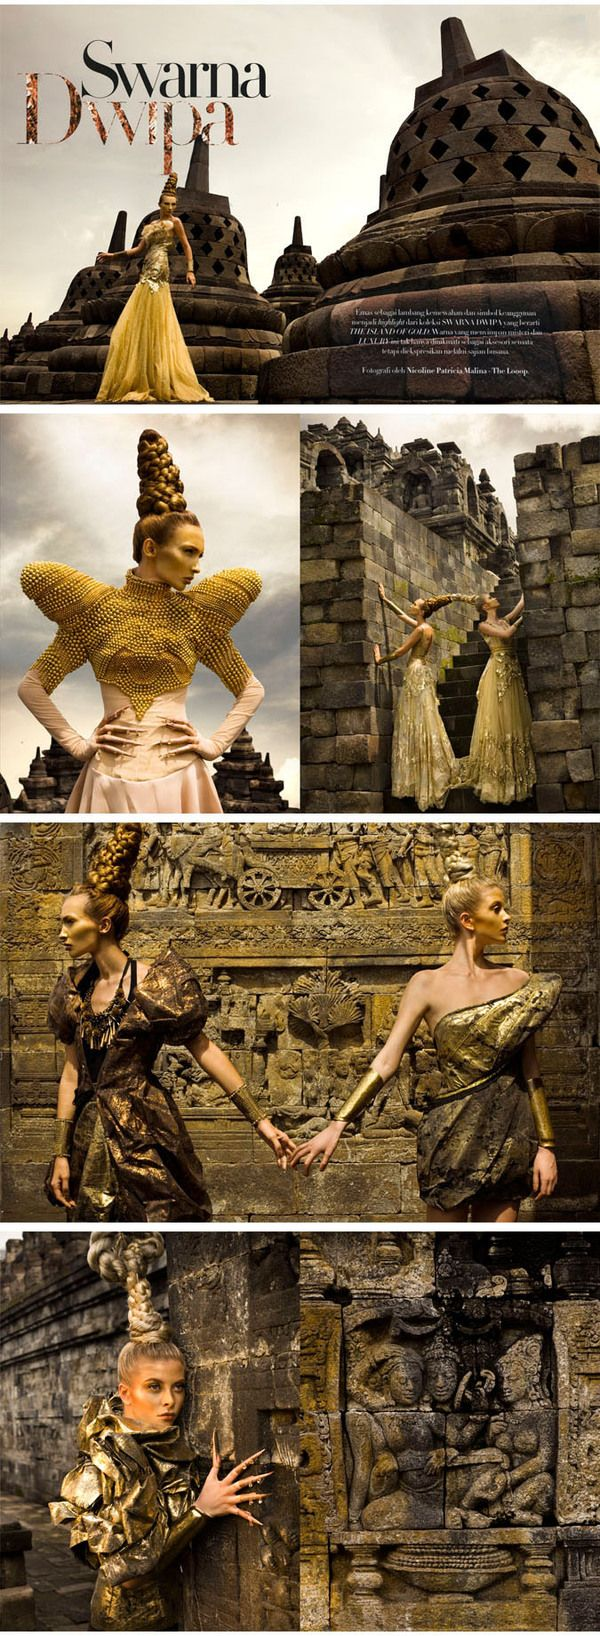 Swarnadwipa  Photographer : Nicoline Patricia Malina  Harper's Bazaar Indonesia May 2010  Stylist : Michael Pondaag  Hair & Make Up : Qiqi Franky & Team  Model : Yulia Jamil & Tanya @ JIM  Assistants : Andry Wibowo, Andre Wiredja / Digital Imaging : Topher Koper  Special Thanks to Ministry of Culture and Tourism and Robert Lee, Deputy Director UNESCO office Jakarta